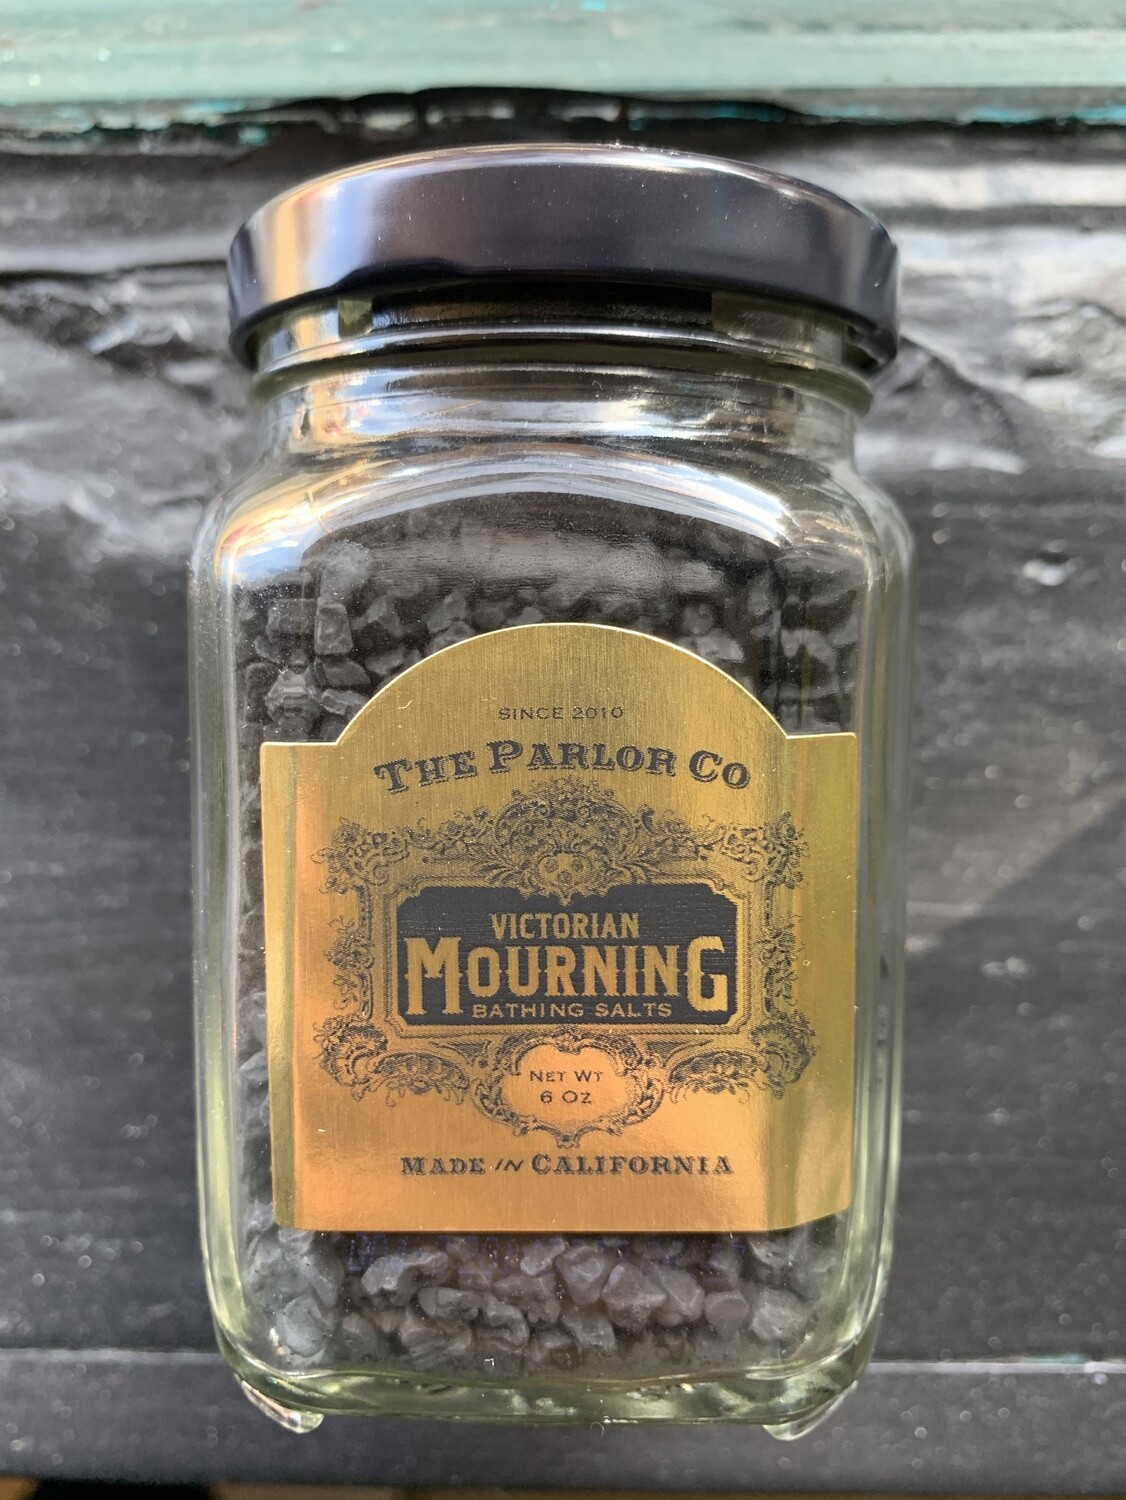 The Parlor Co Victorian Mourning Bath Salts